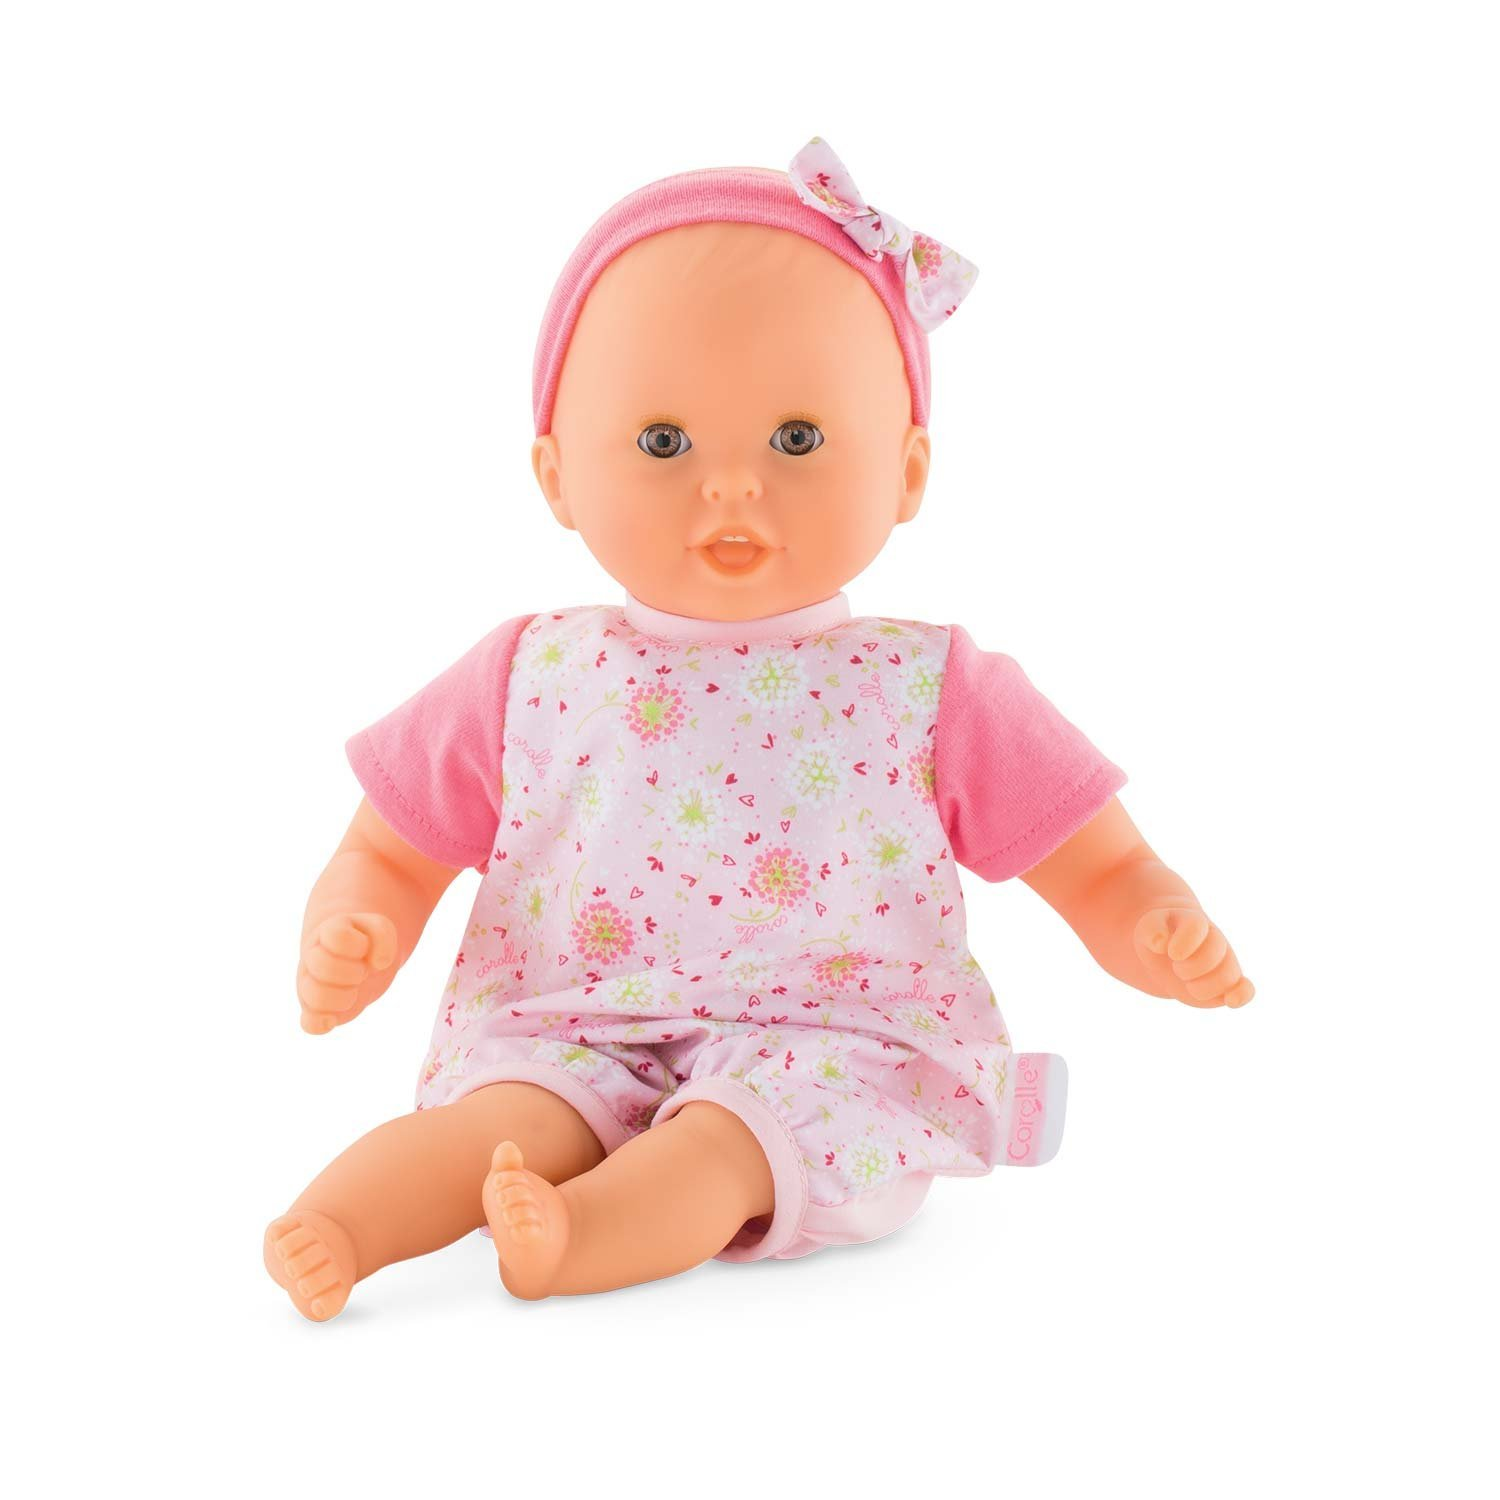 Corolle Mon Premier Poupon Bebe Calin Loving & Melodies Pink Baby Doll FPJ95 by